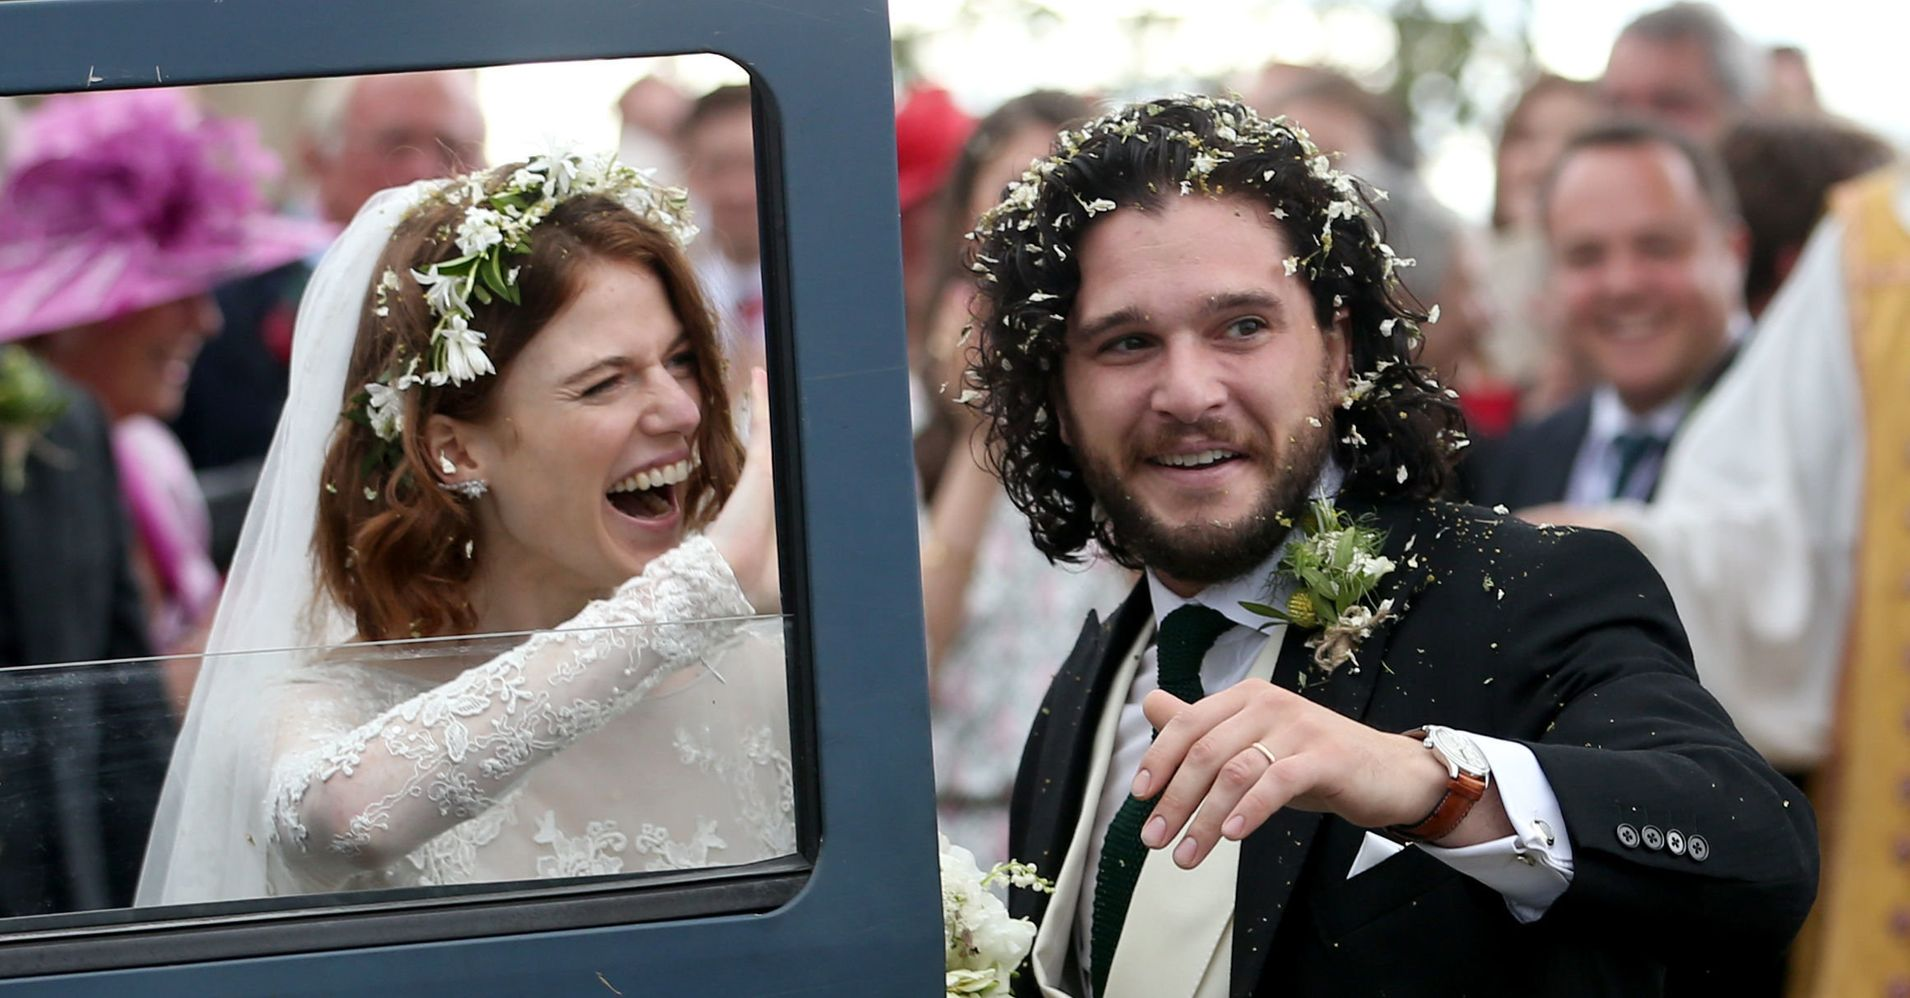 'Game Of Thrones' Stars Kit Harington And Rose Leslie Just Got Married IRL